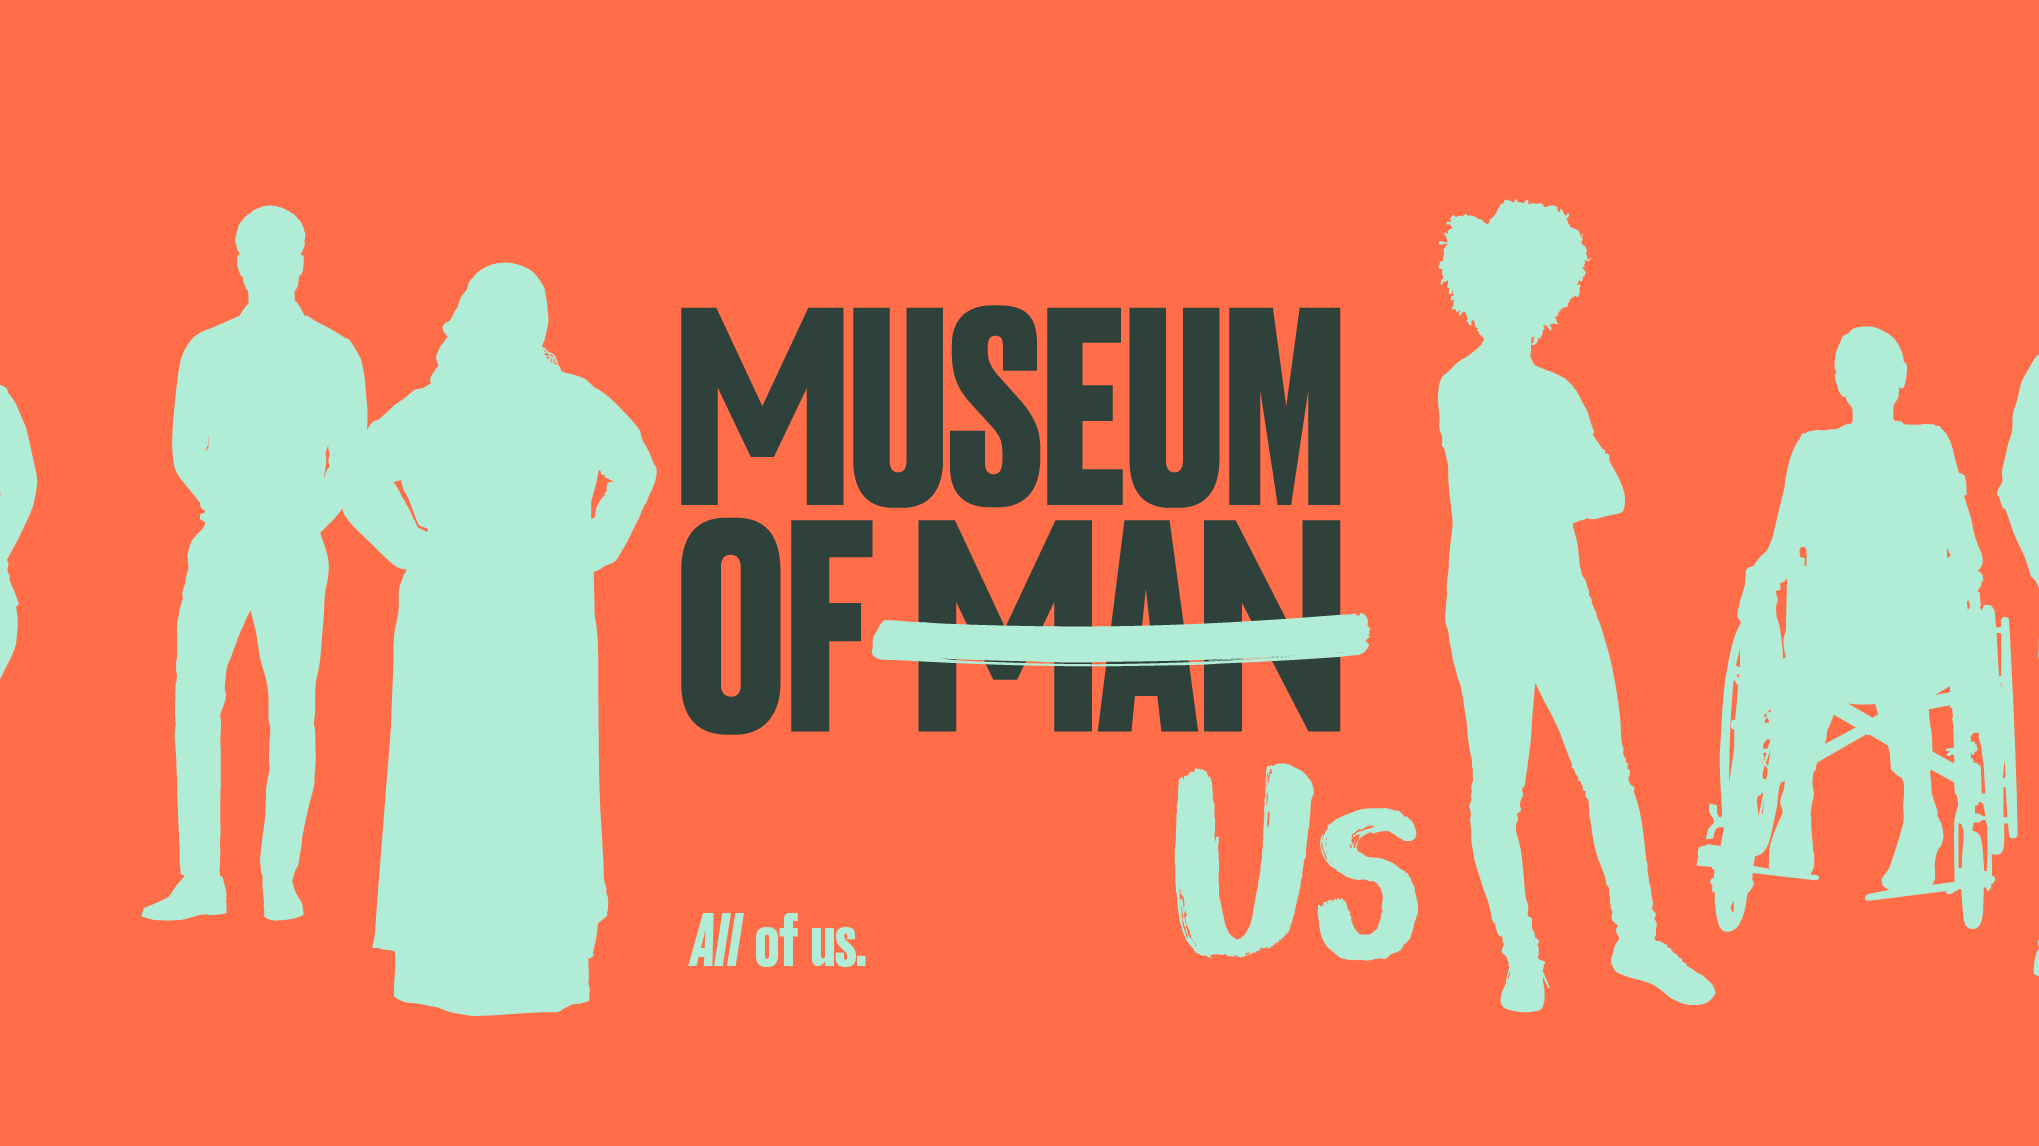 """A graphic of the name """"Museum of Man"""" with """"Man"""" crossed out and rewritten as """"Us,"""" with the slogan """"All of us."""" written underneath, surrounded by silhouettes of diverse people."""